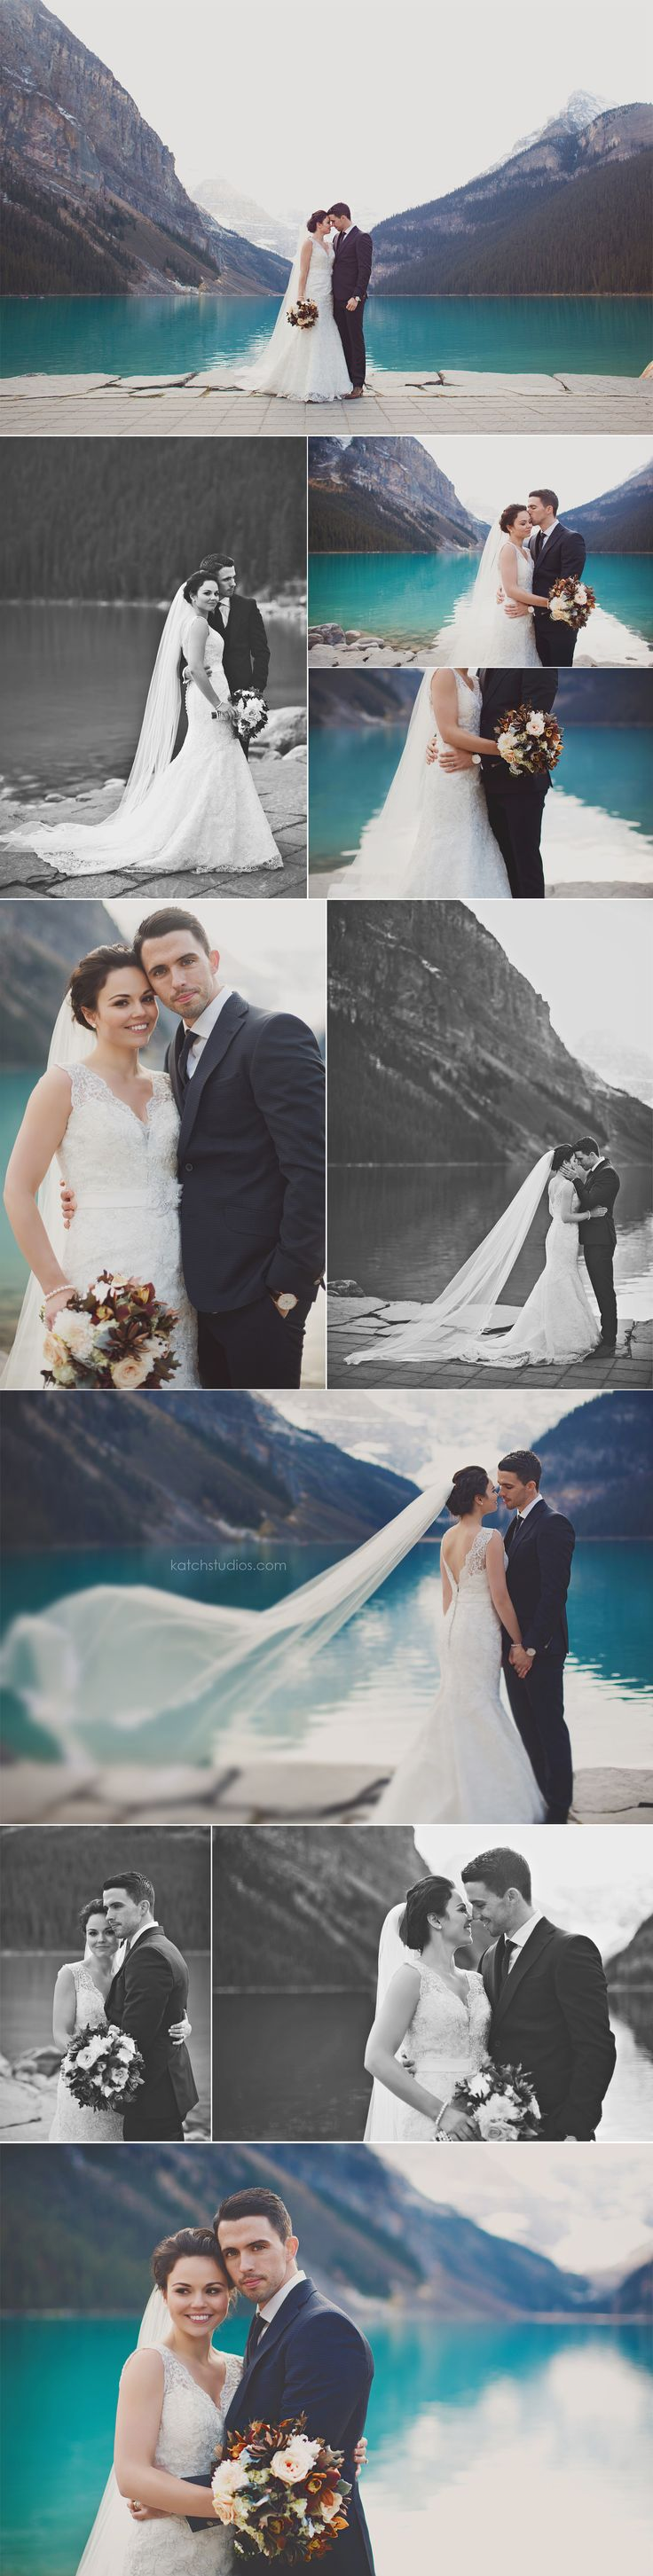 one, this is confirmation that I am getting married in the mountains. what beautiful photos. and two, this is just the most beautiful wedding I have ever seen.